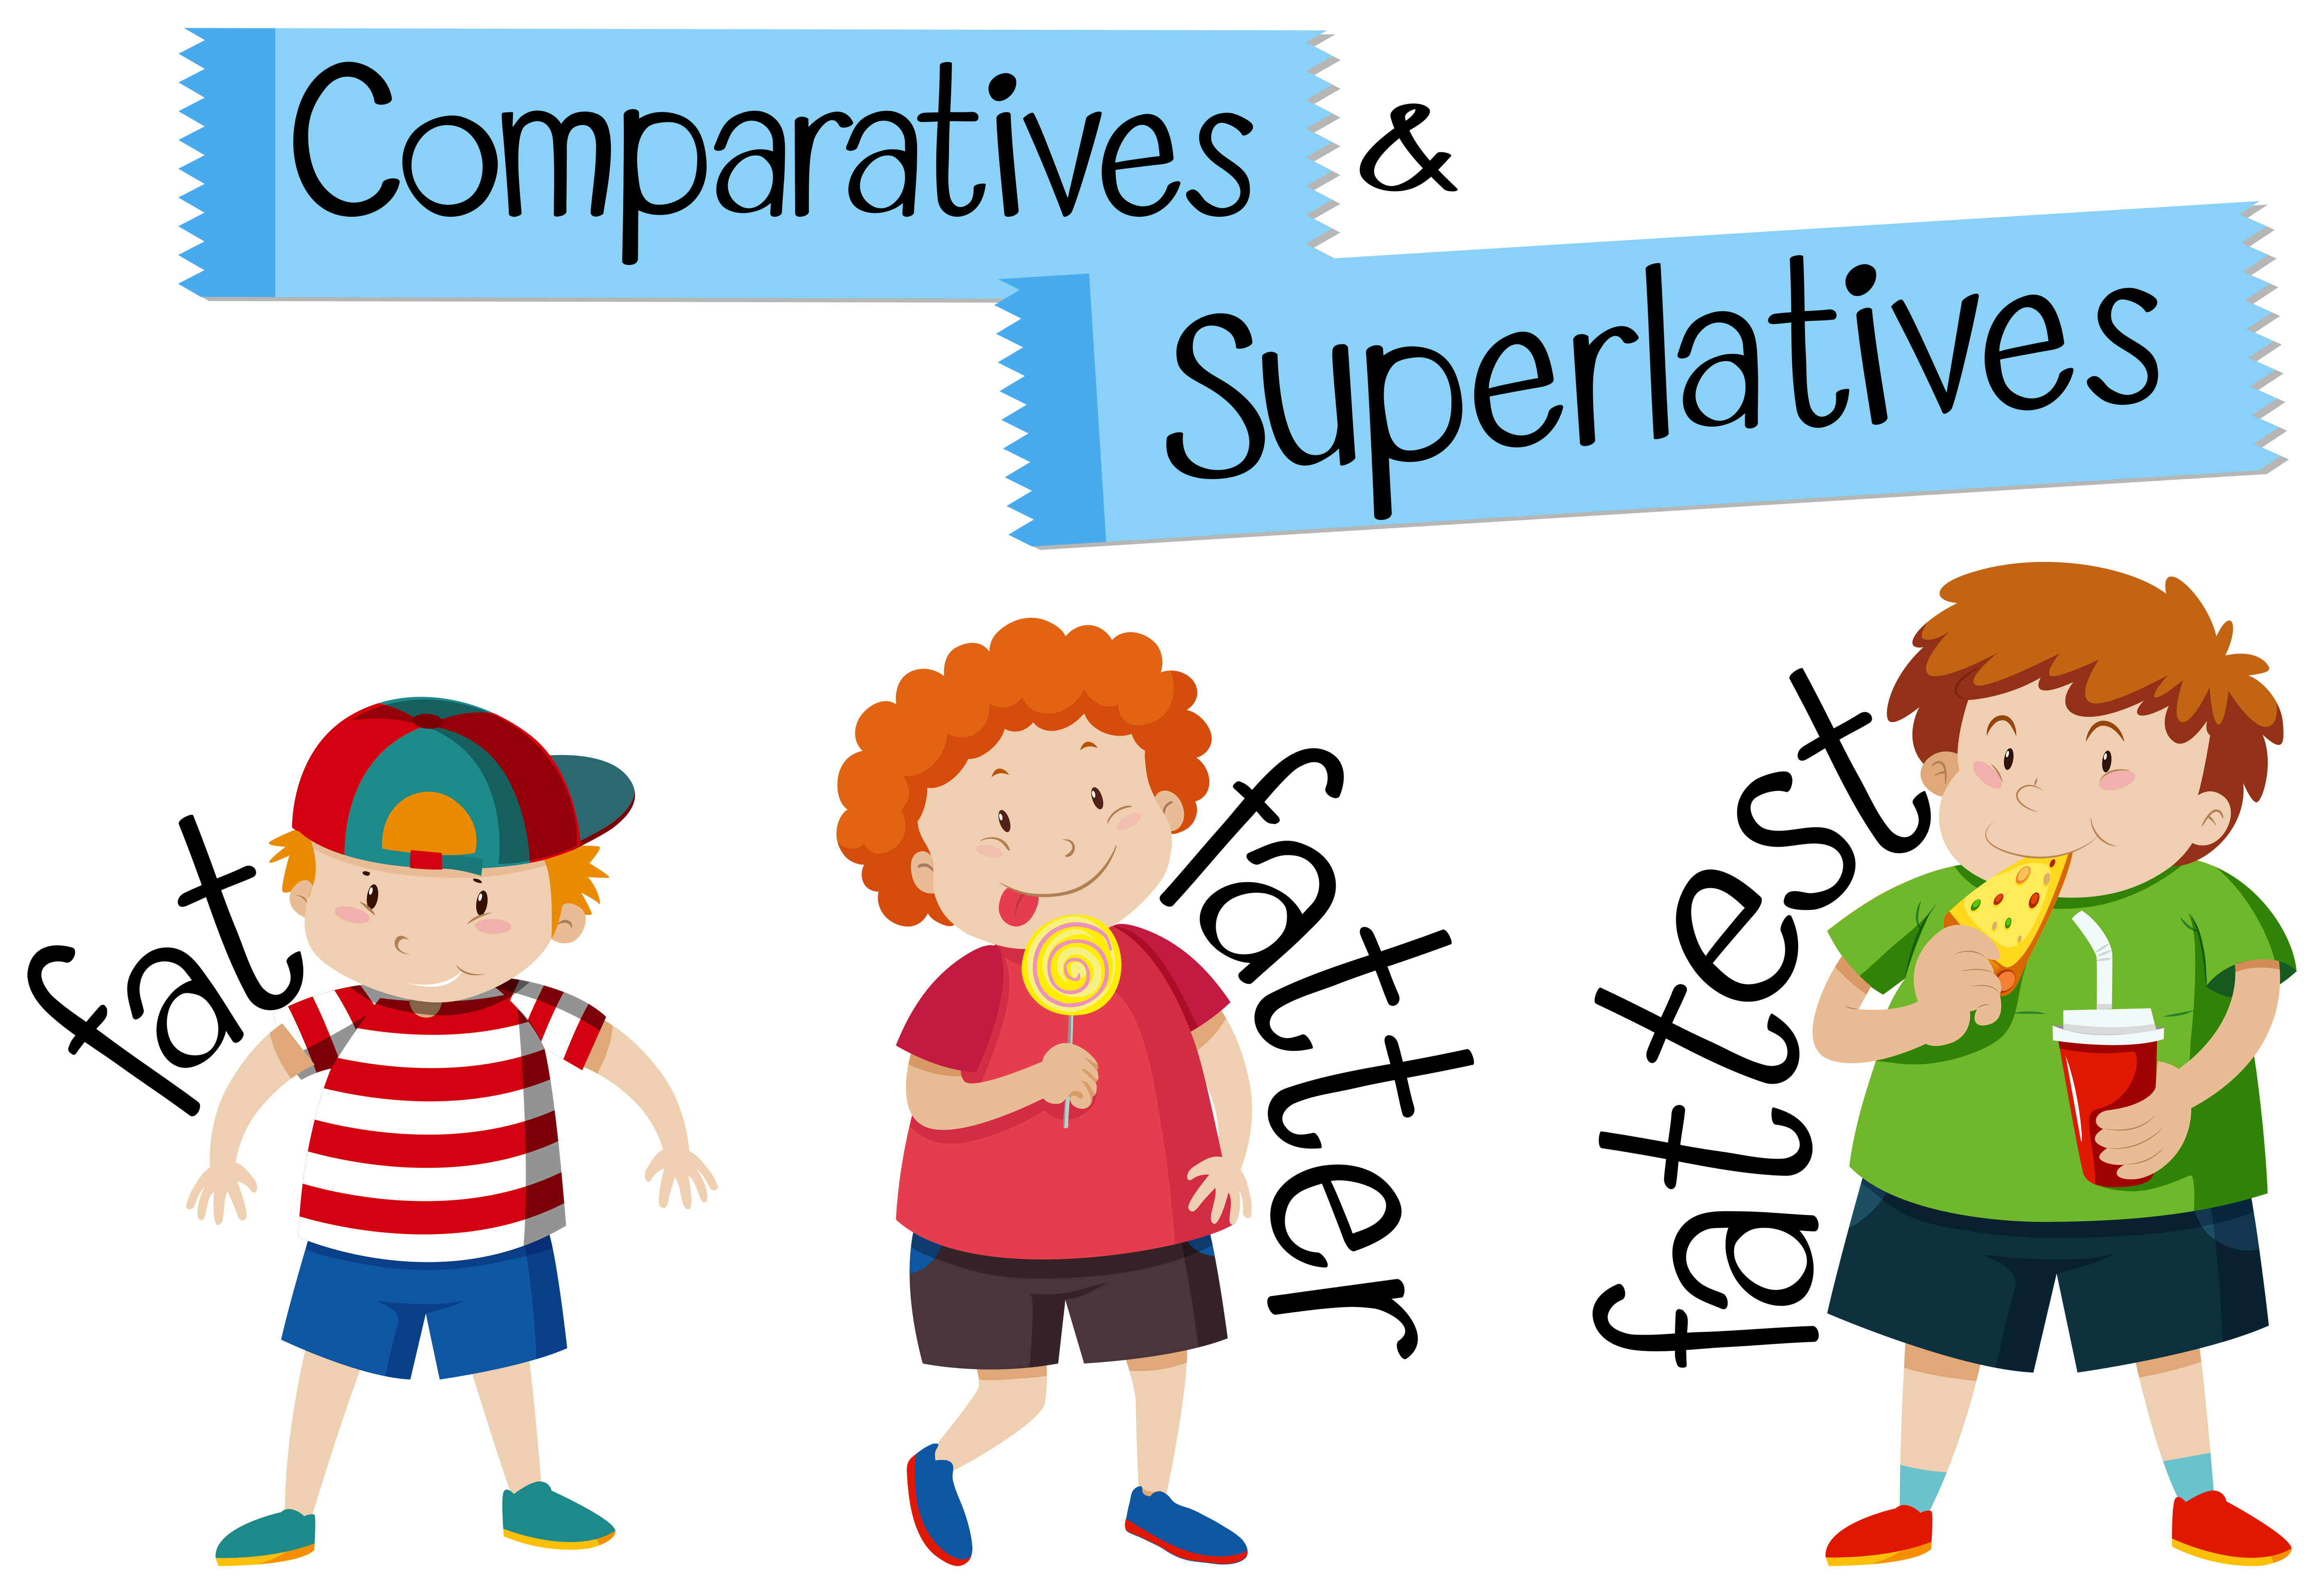 Comparatives And Superlatives For Word Fat